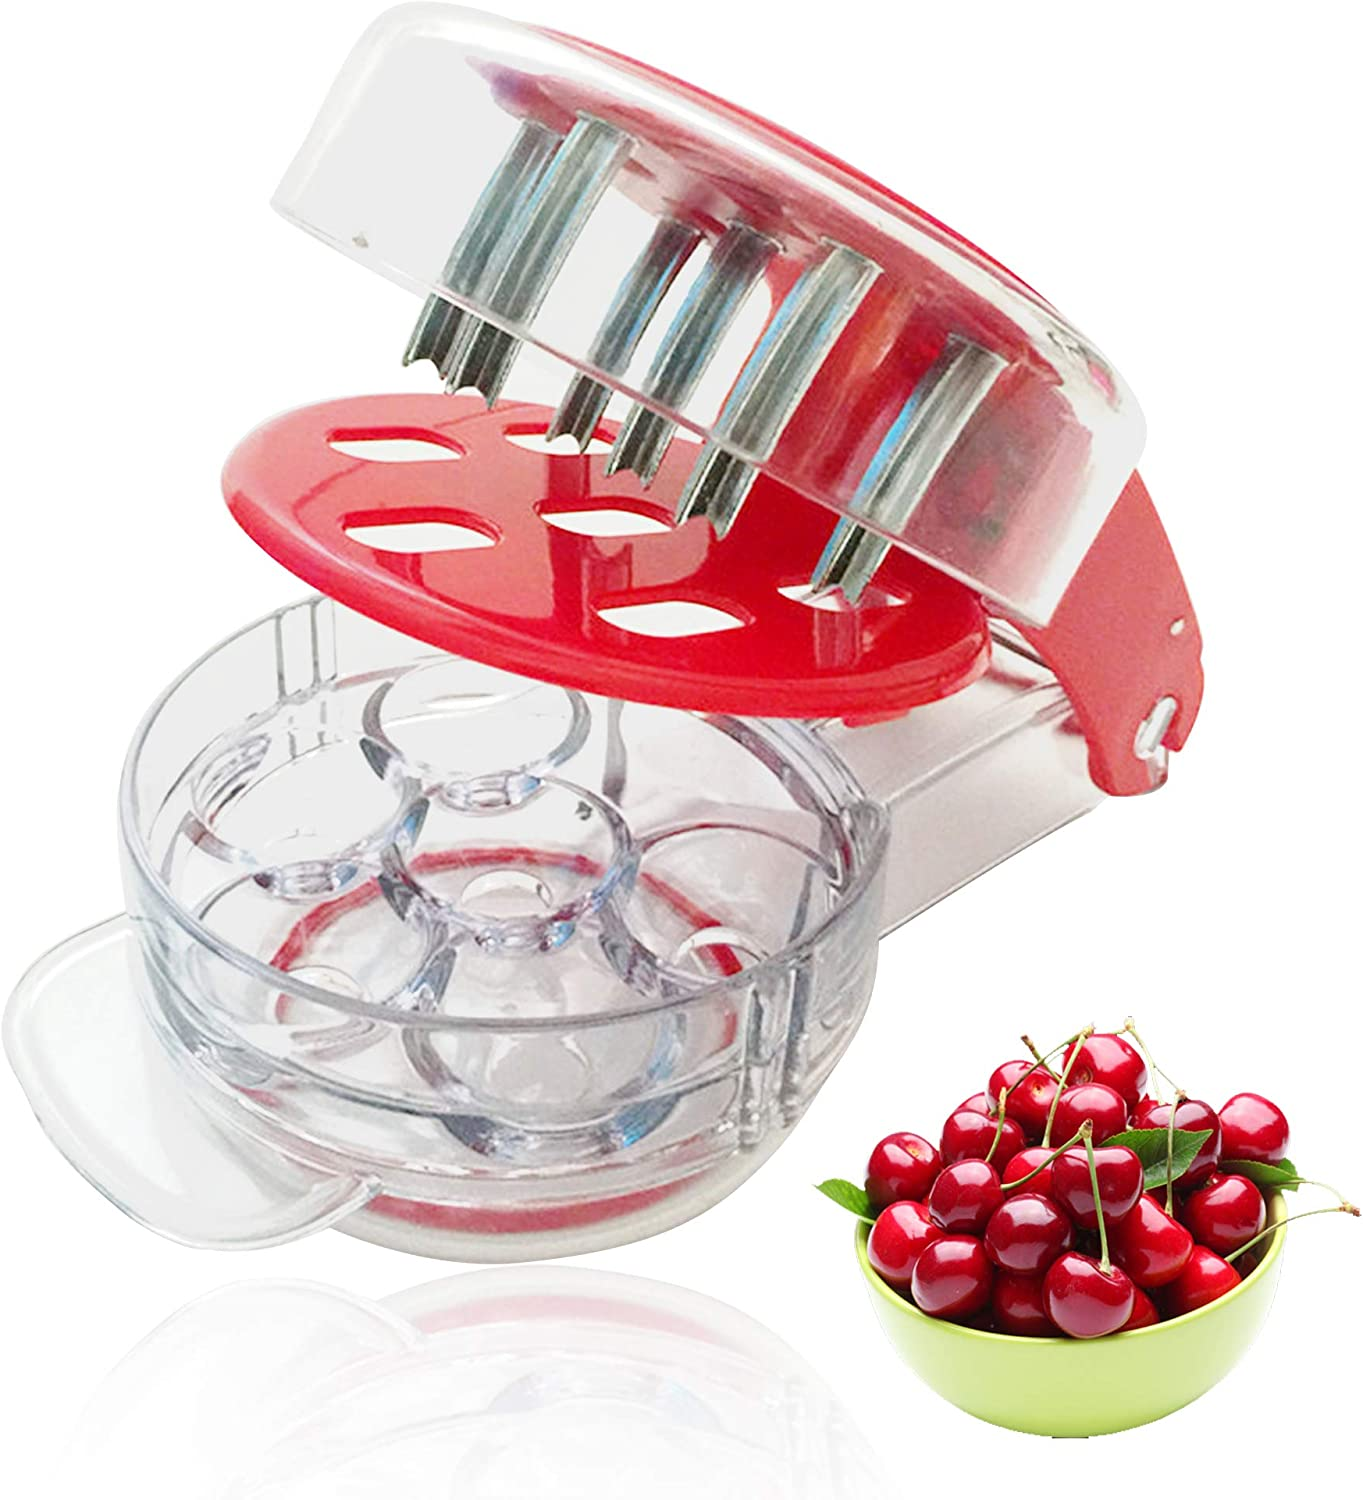 Hovely Cherry Pitter GPC-5100 Cherry Pitter Stoner Seed and Olive Tool Remover Cherry Stone Remover